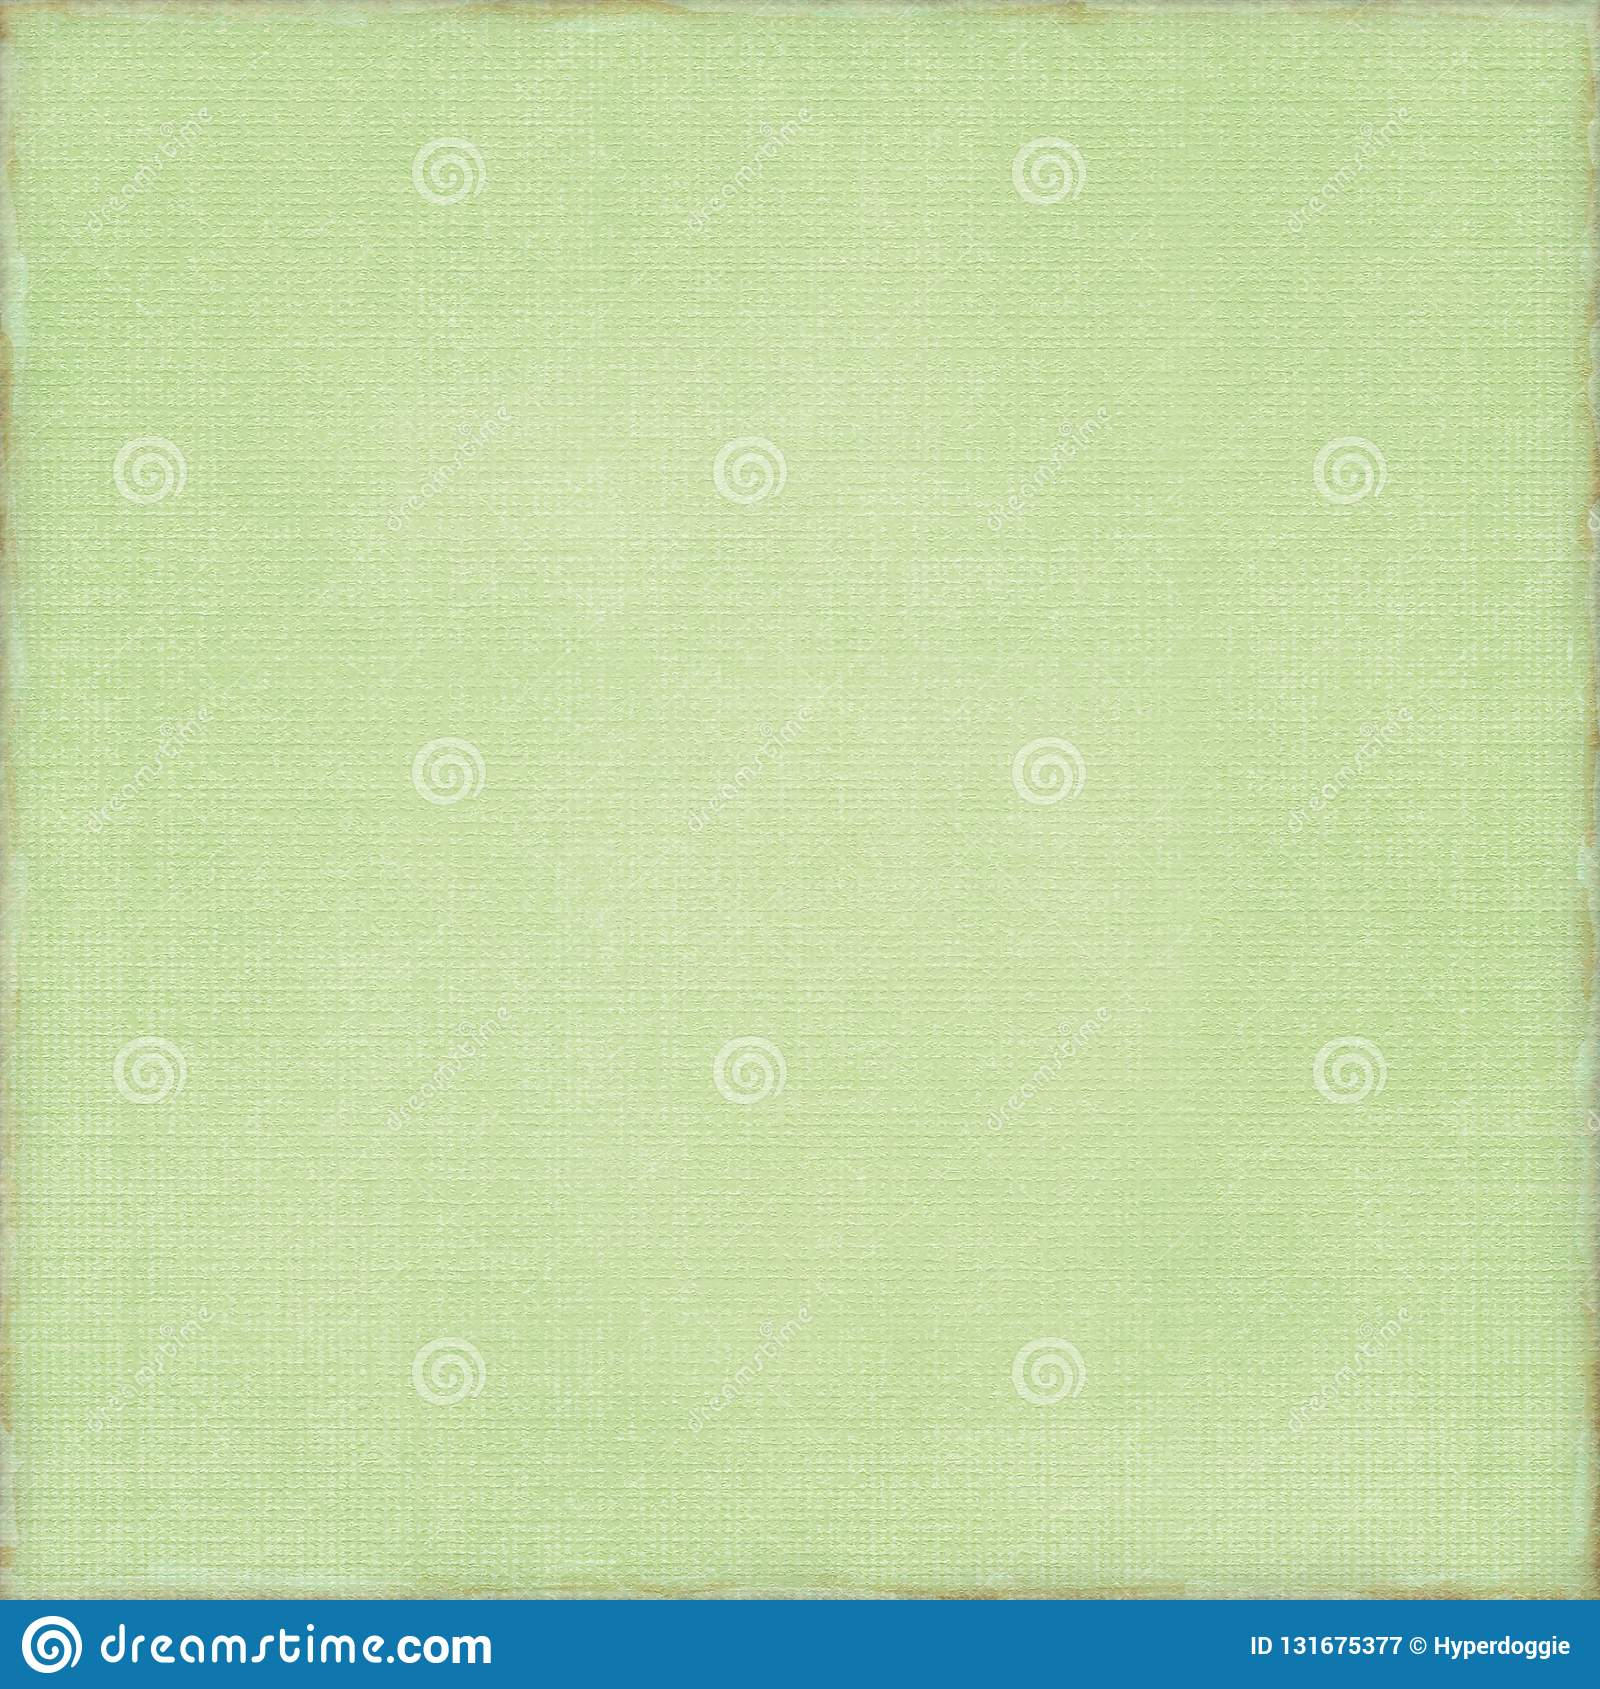 Spring Green Neutral Simple Minimalist Worn Background Rustic Wedding More